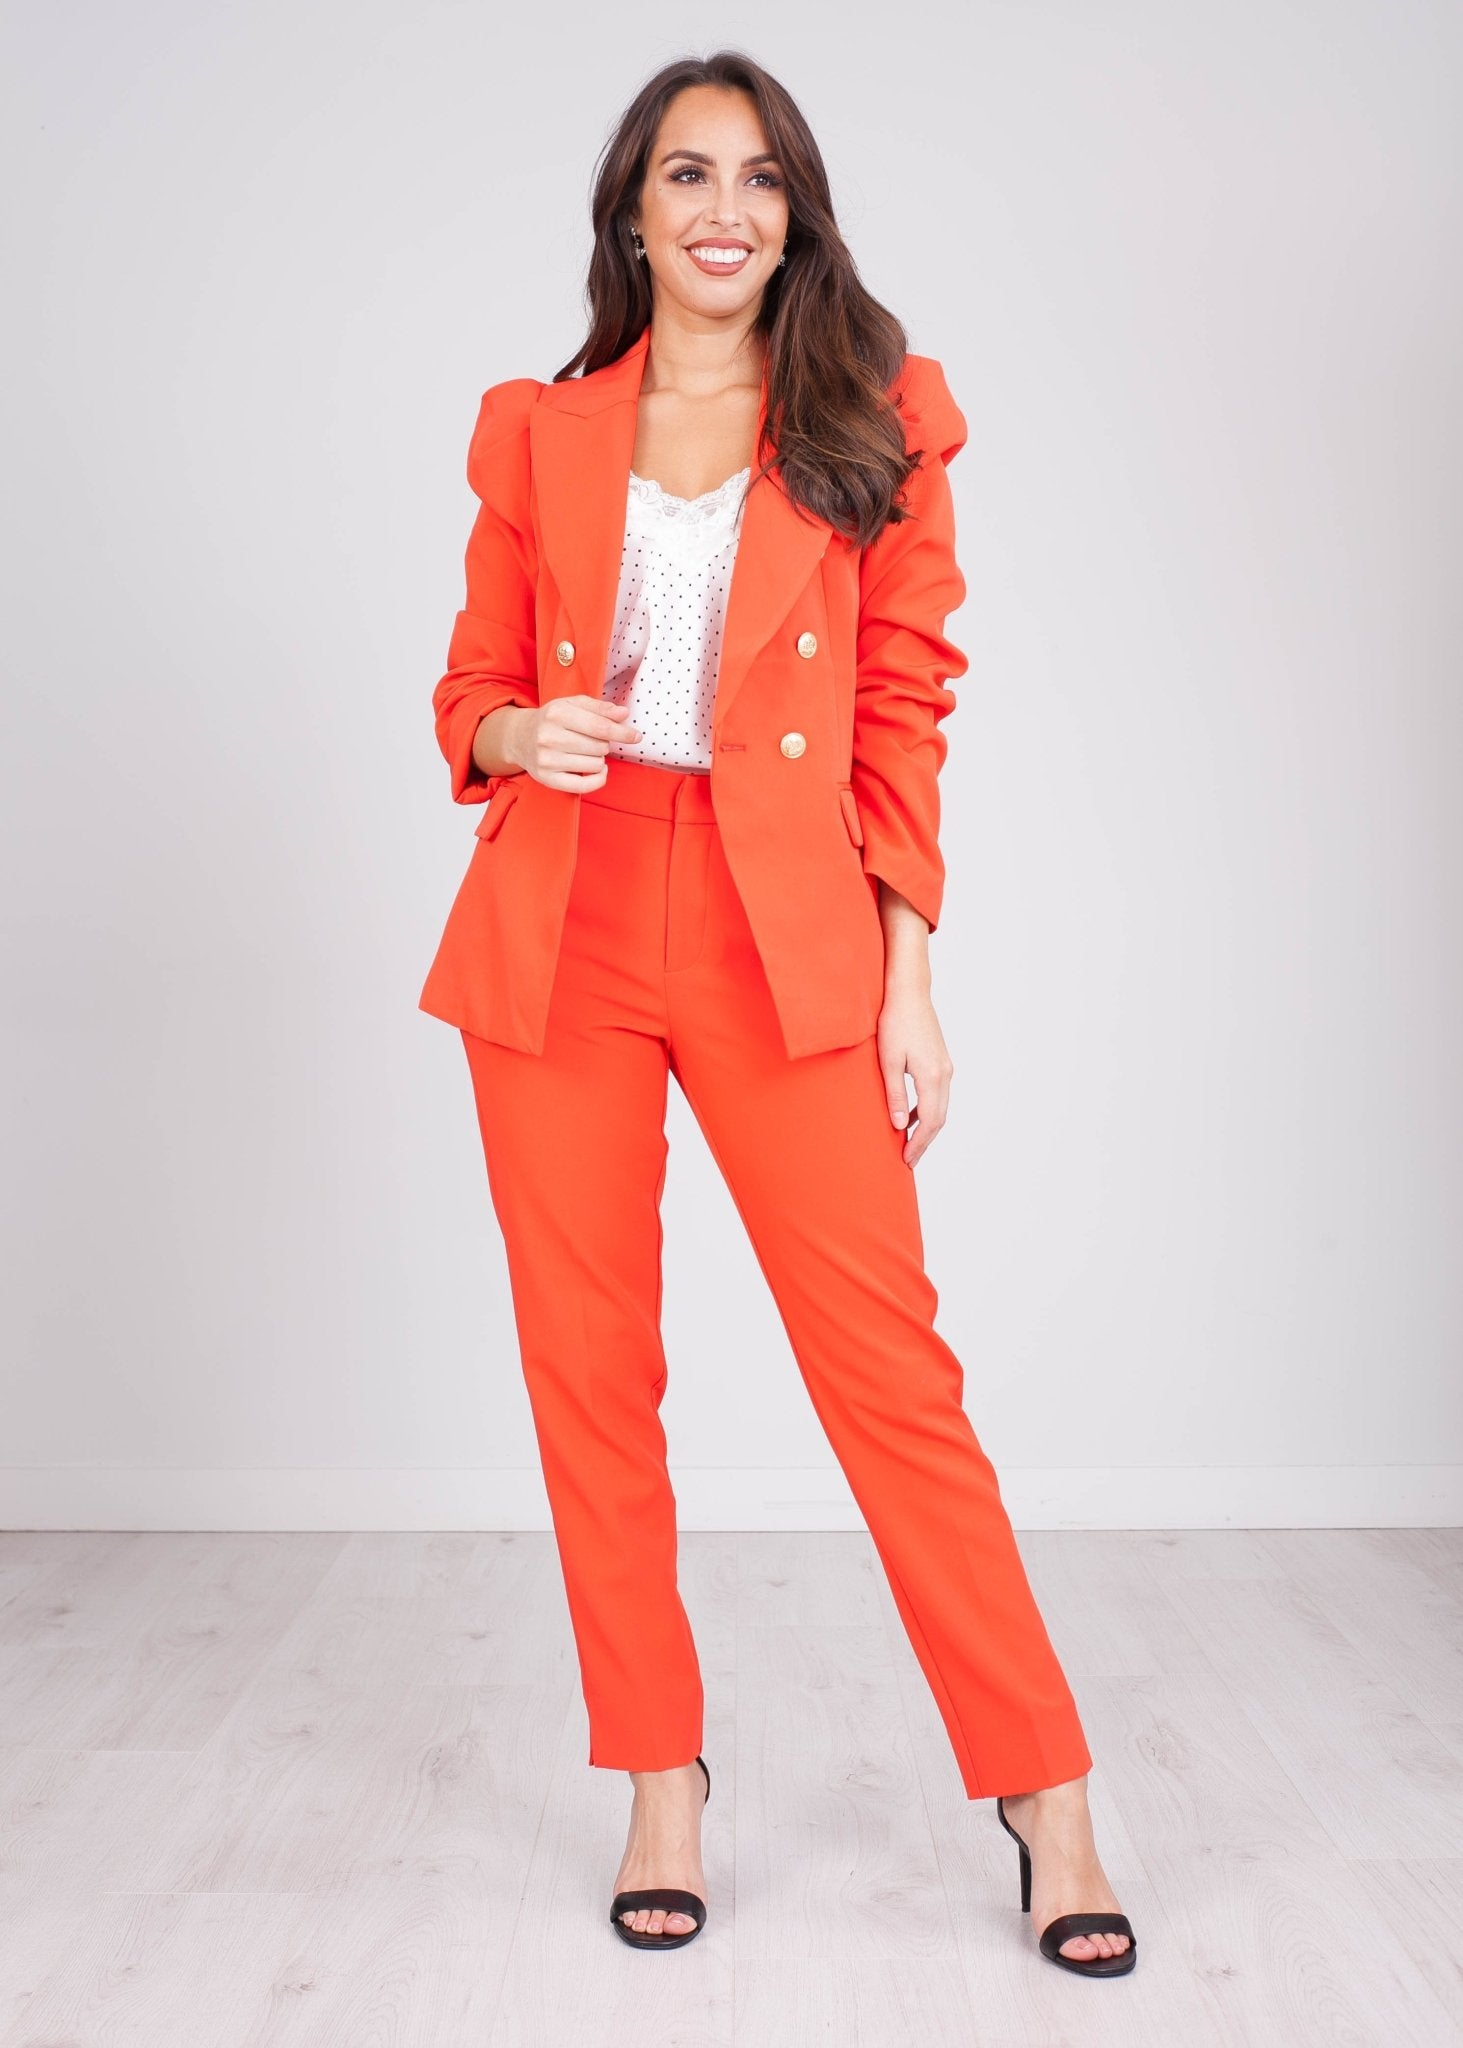 Arabella Coral Red Blazer - The Walk in Wardrobe